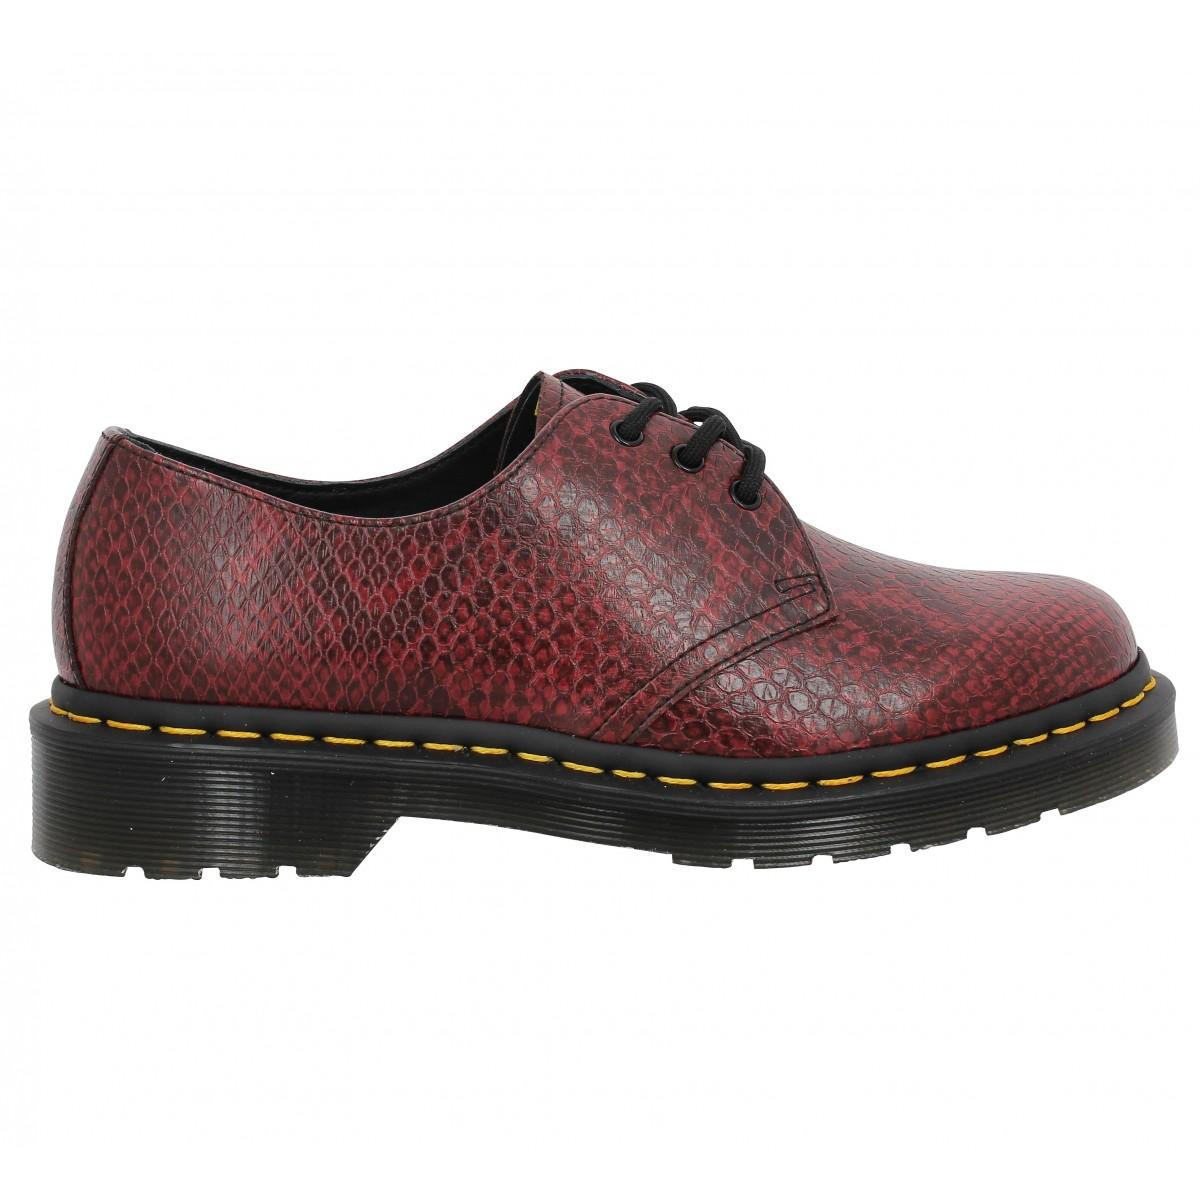 dr martens 1461 viper femme rouge femme fanny chaussures. Black Bedroom Furniture Sets. Home Design Ideas